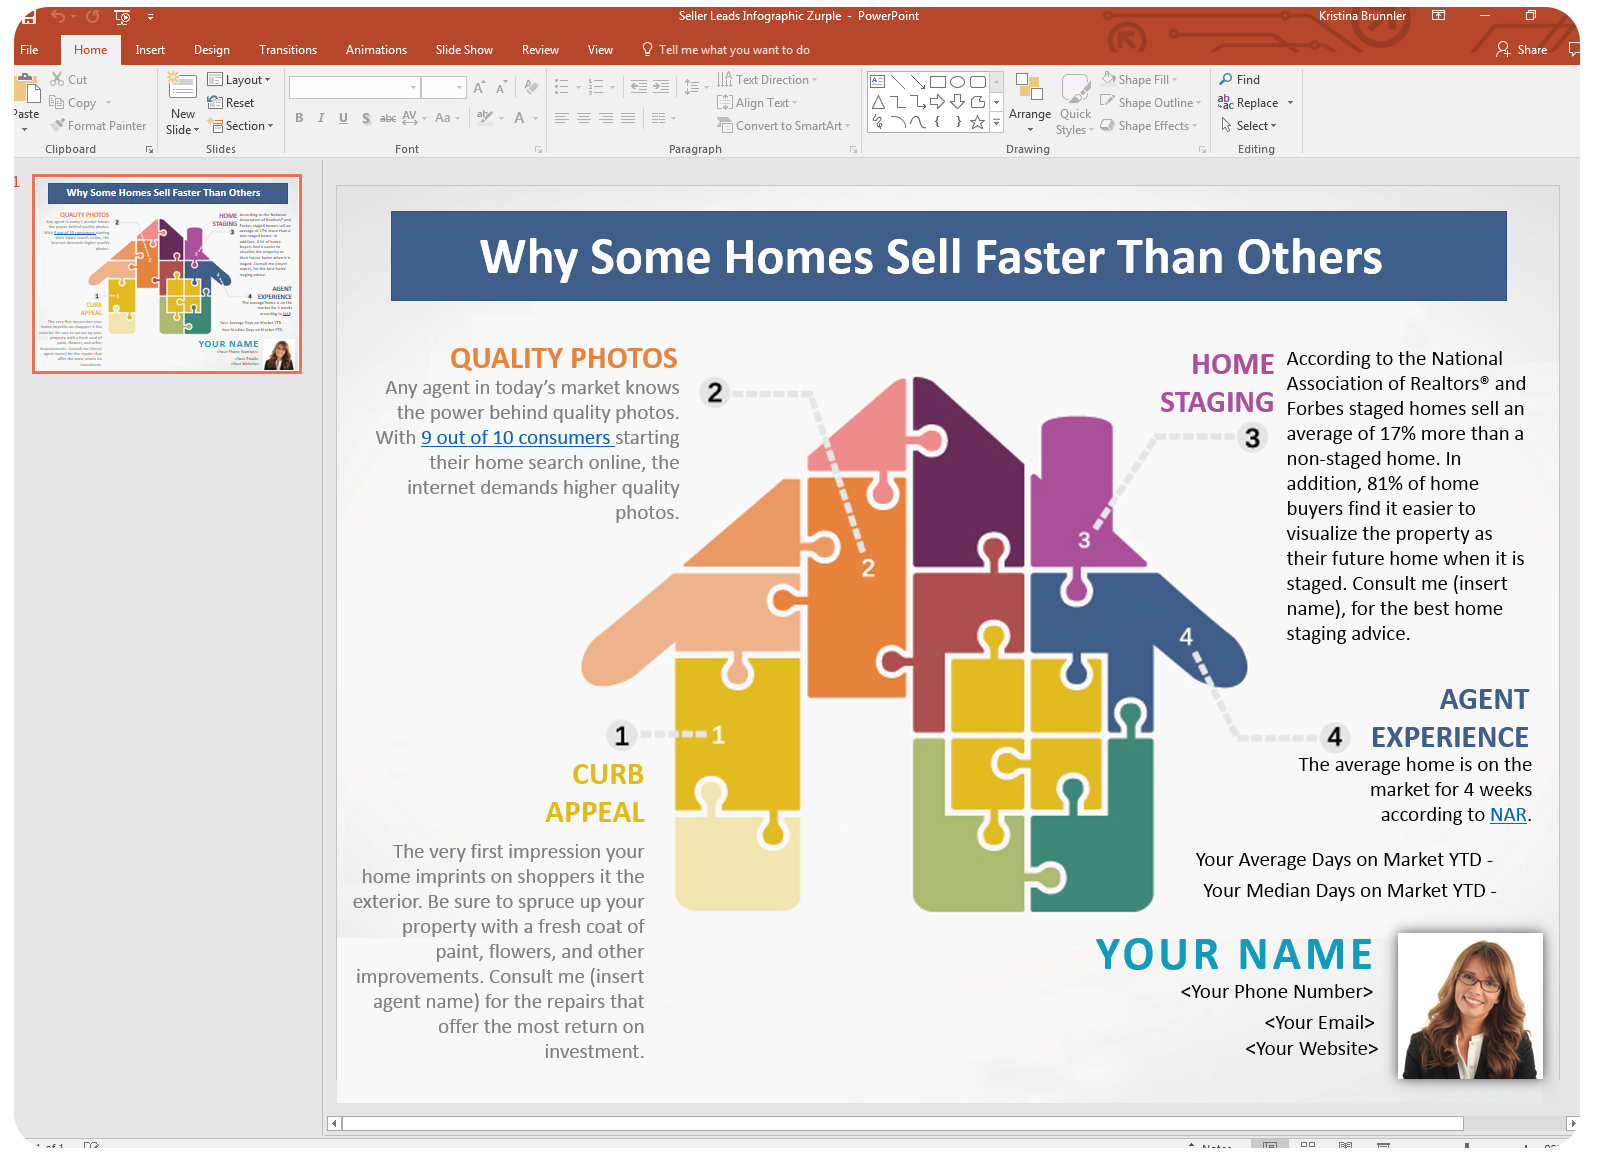 PowerPoint Screenshot-1.png